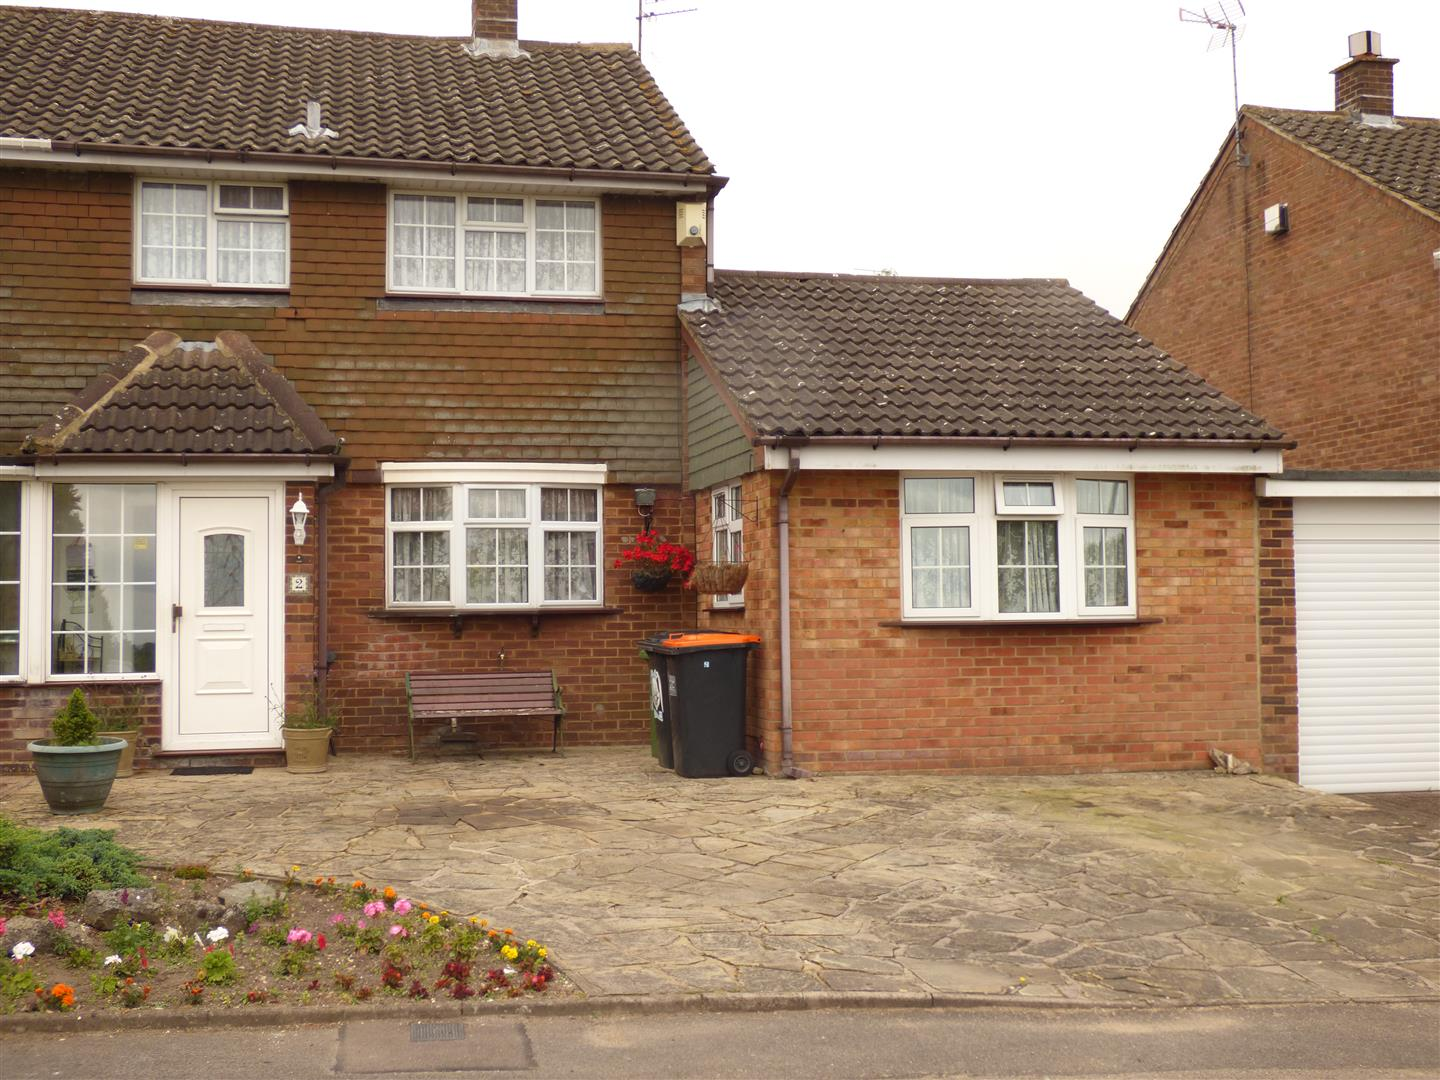 4 Bedrooms Property for sale in Hilton Avenue, Dunstable